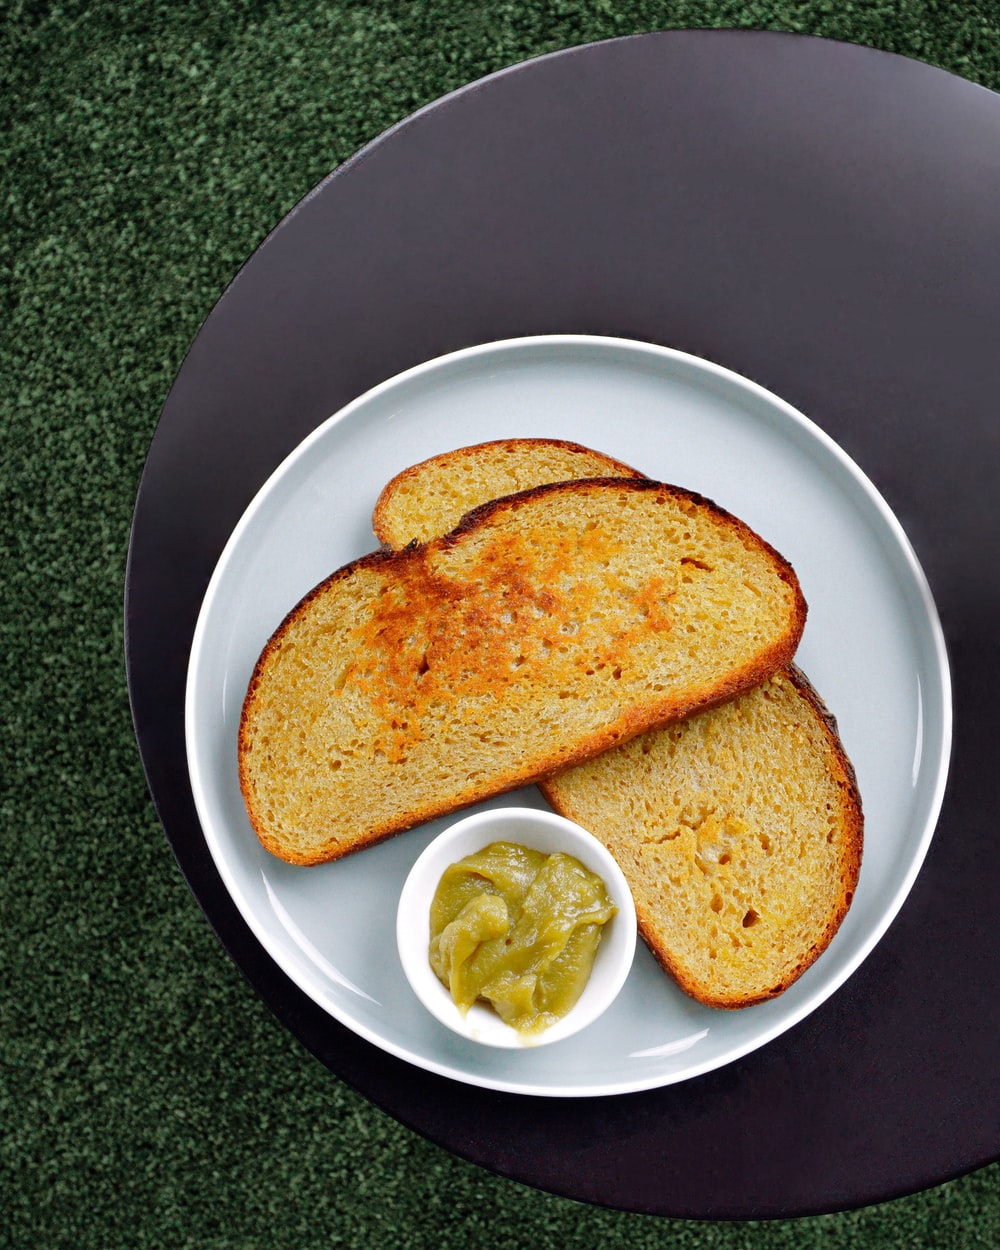 toasted bread with sauce